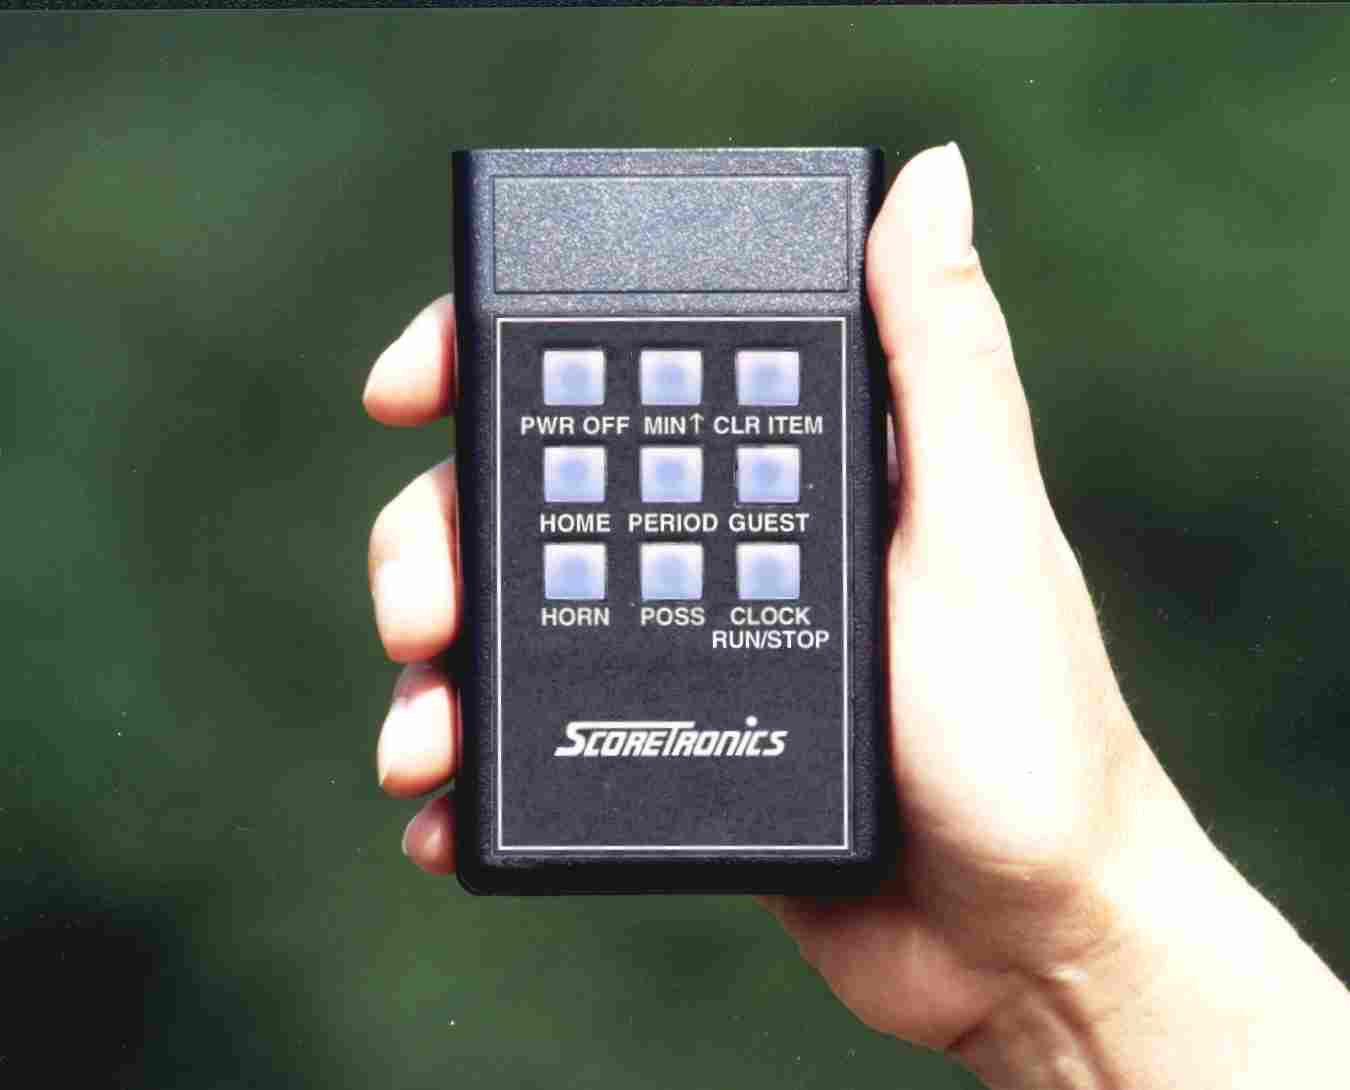 Standard remote control for portable basktball / football / soccer / hockey scoreboard.